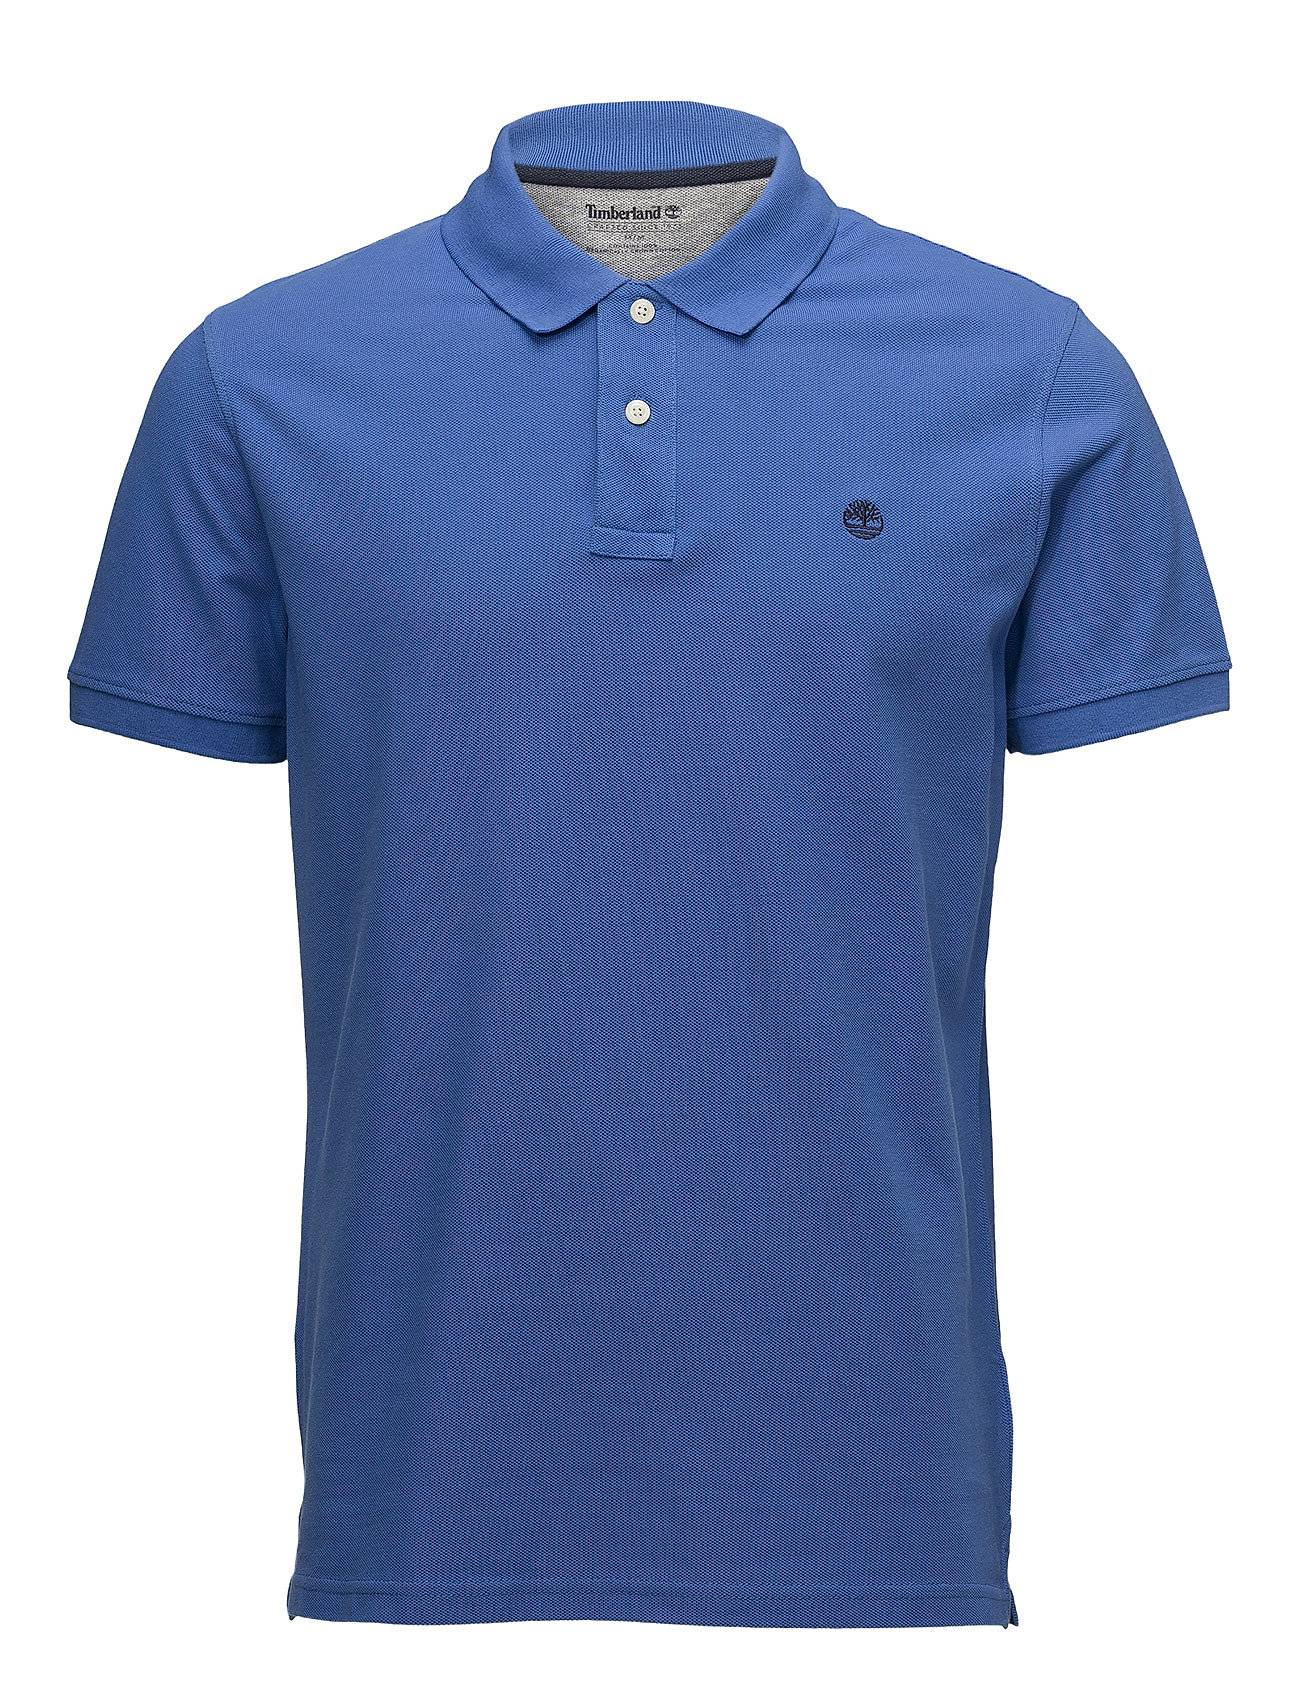 Timberland Ss Millers River Pique Reg Polo